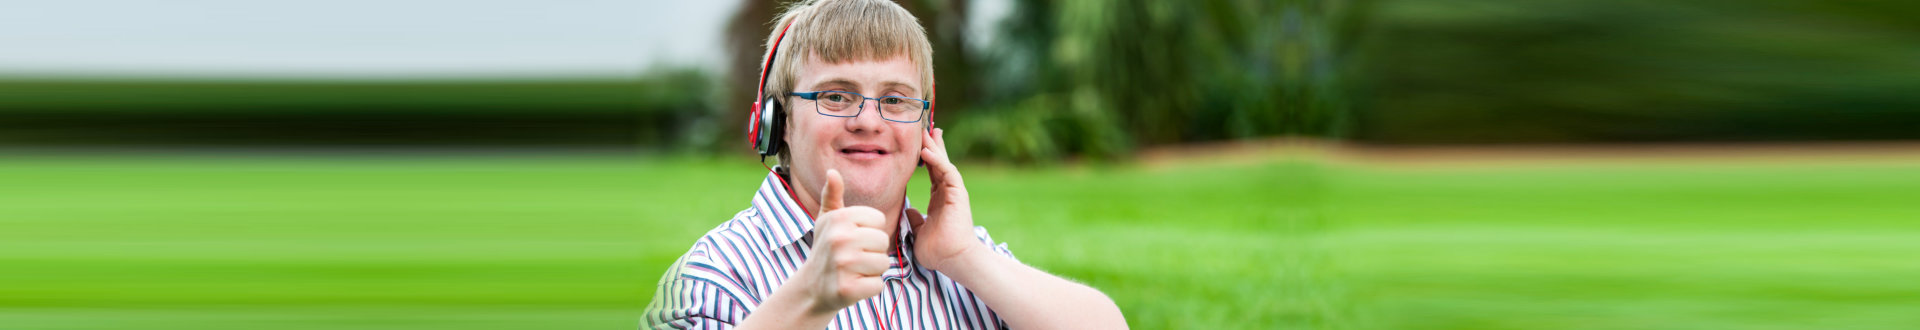 Close up portrait of down syndrome boy with headset